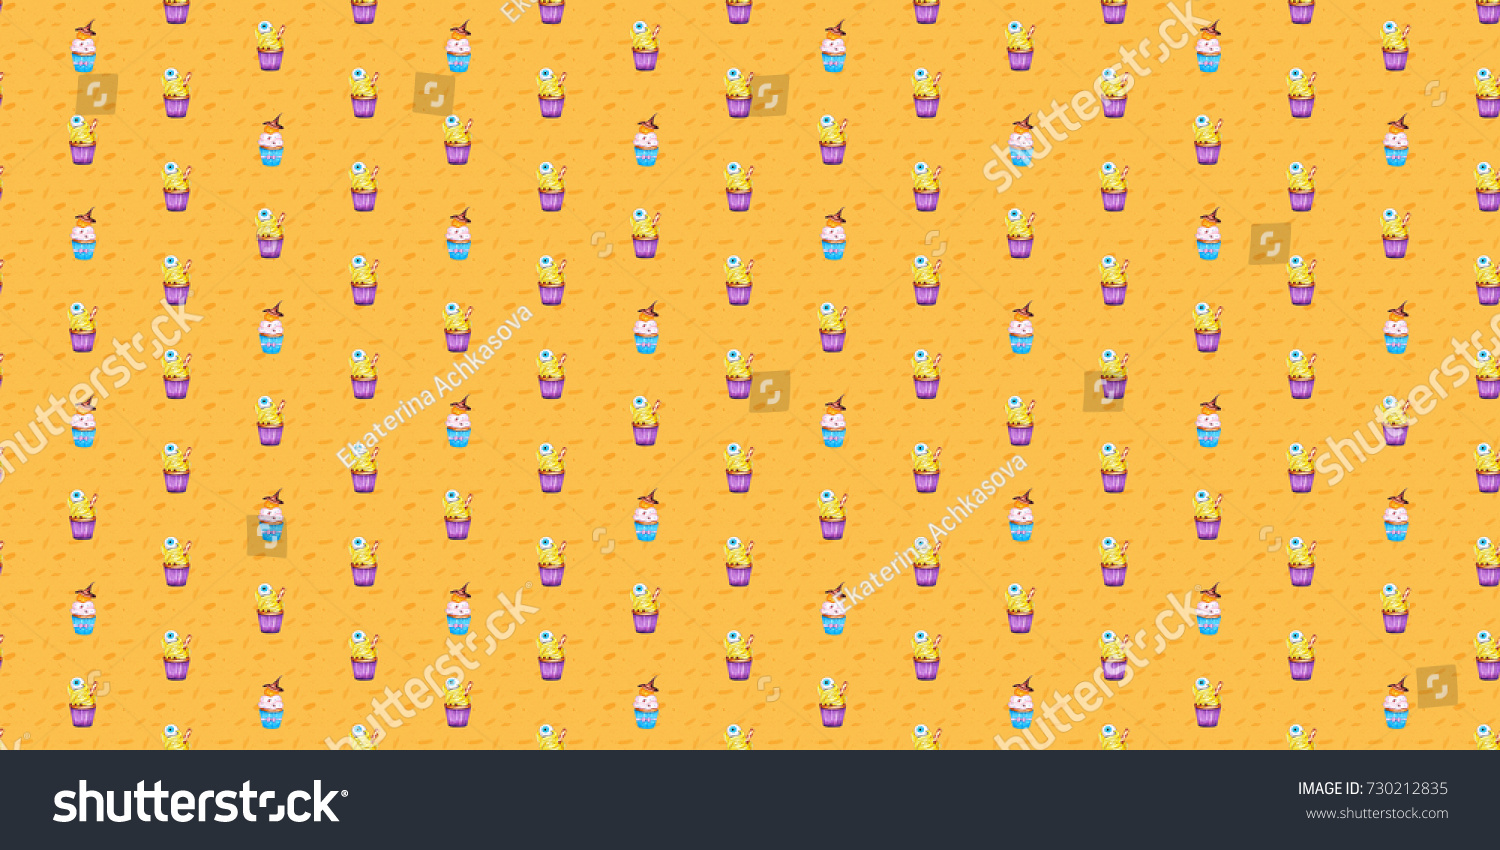 Halloween Seamless Pattern With Hand Drawn Cupcakes On The Pure Yellow Orange Background